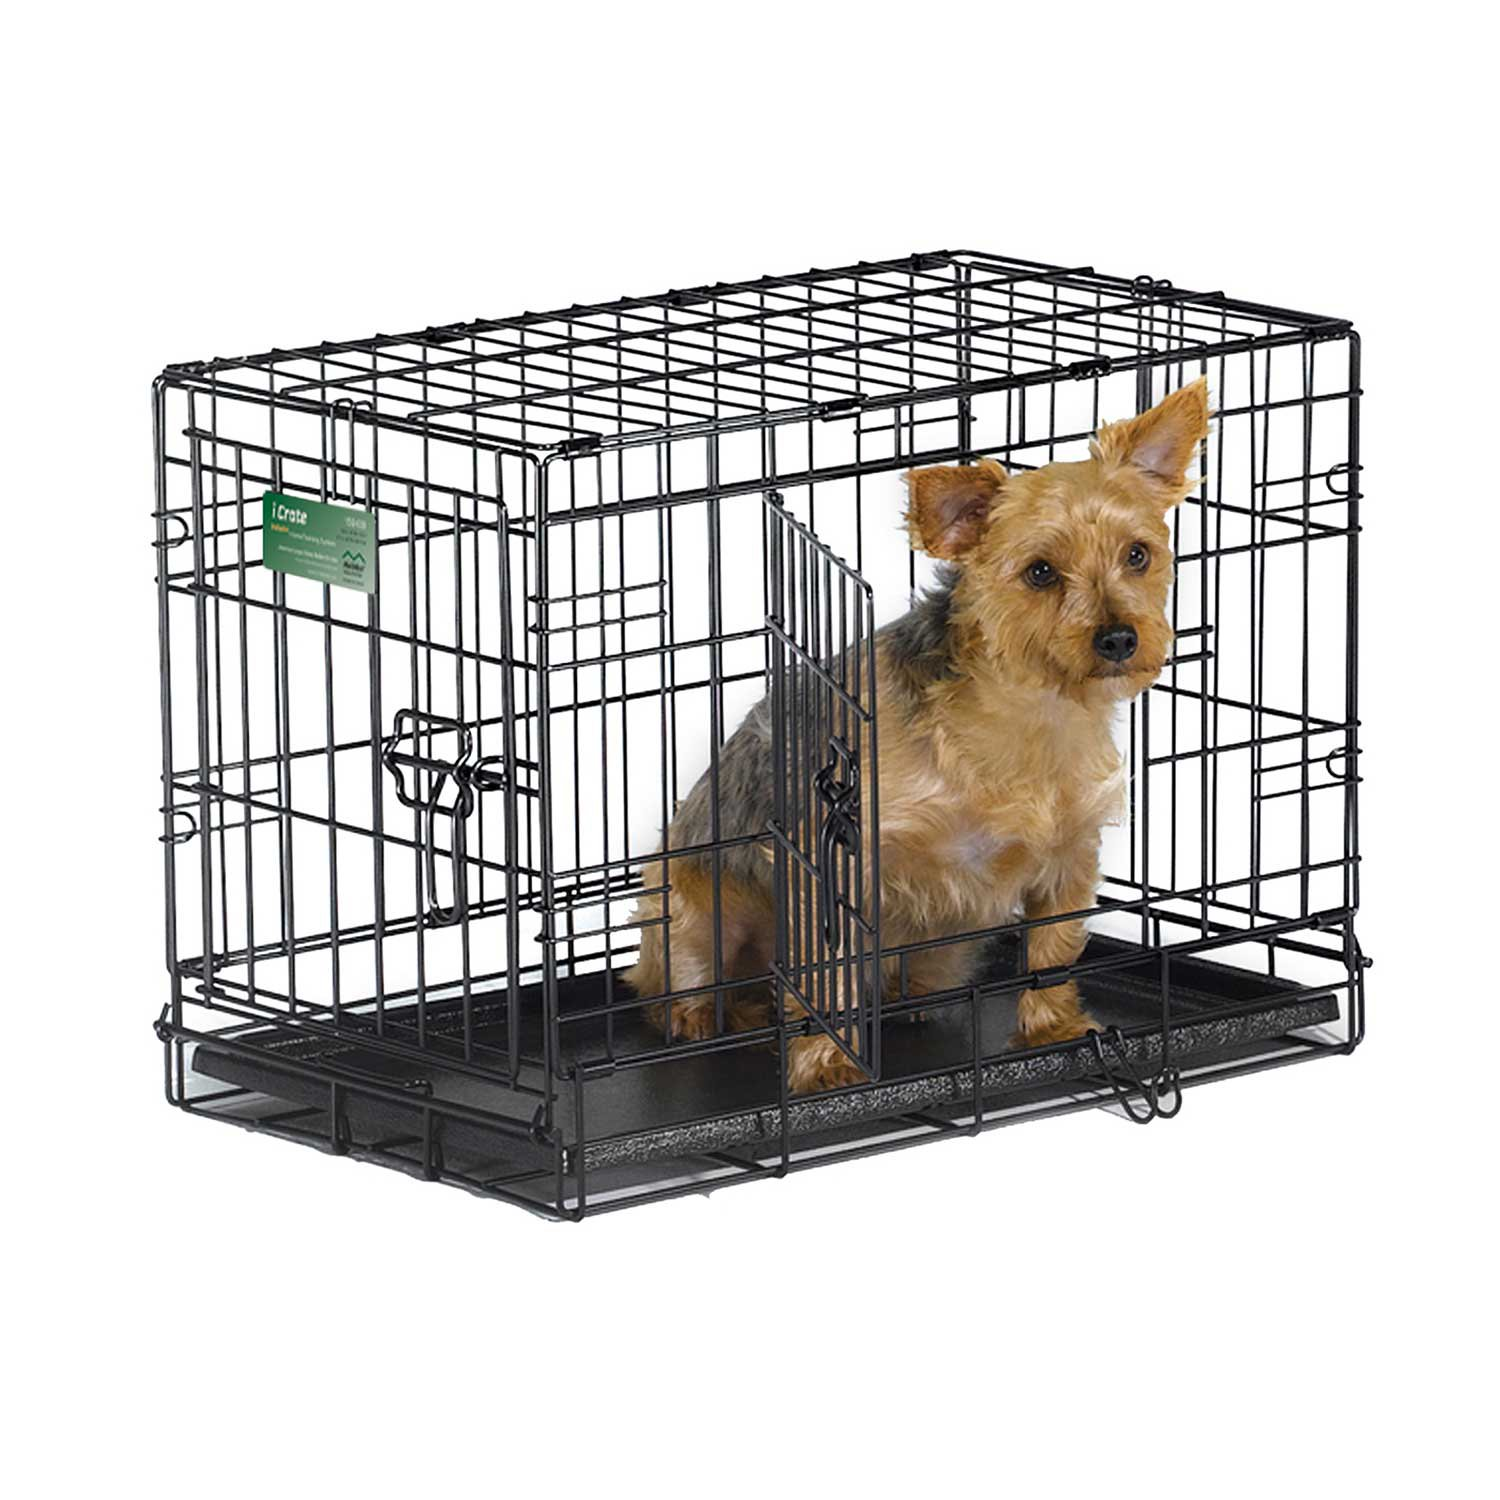 Midwest icrate double door folding dog crates petco for Double door with dog door